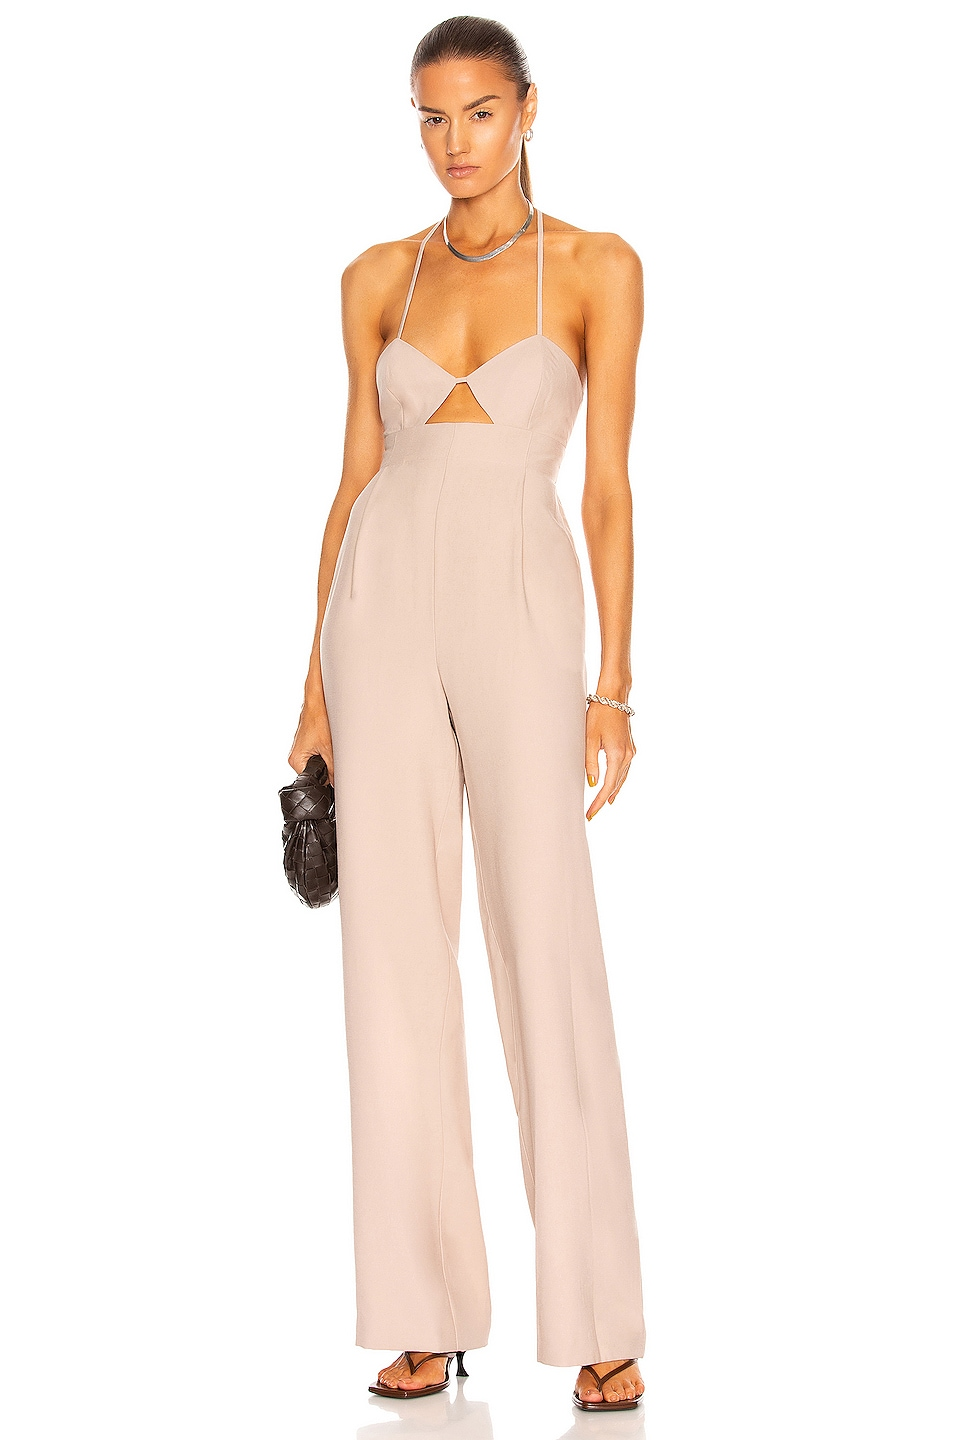 Image 1 of The Sei Cut Out Jumpsuit in Bone